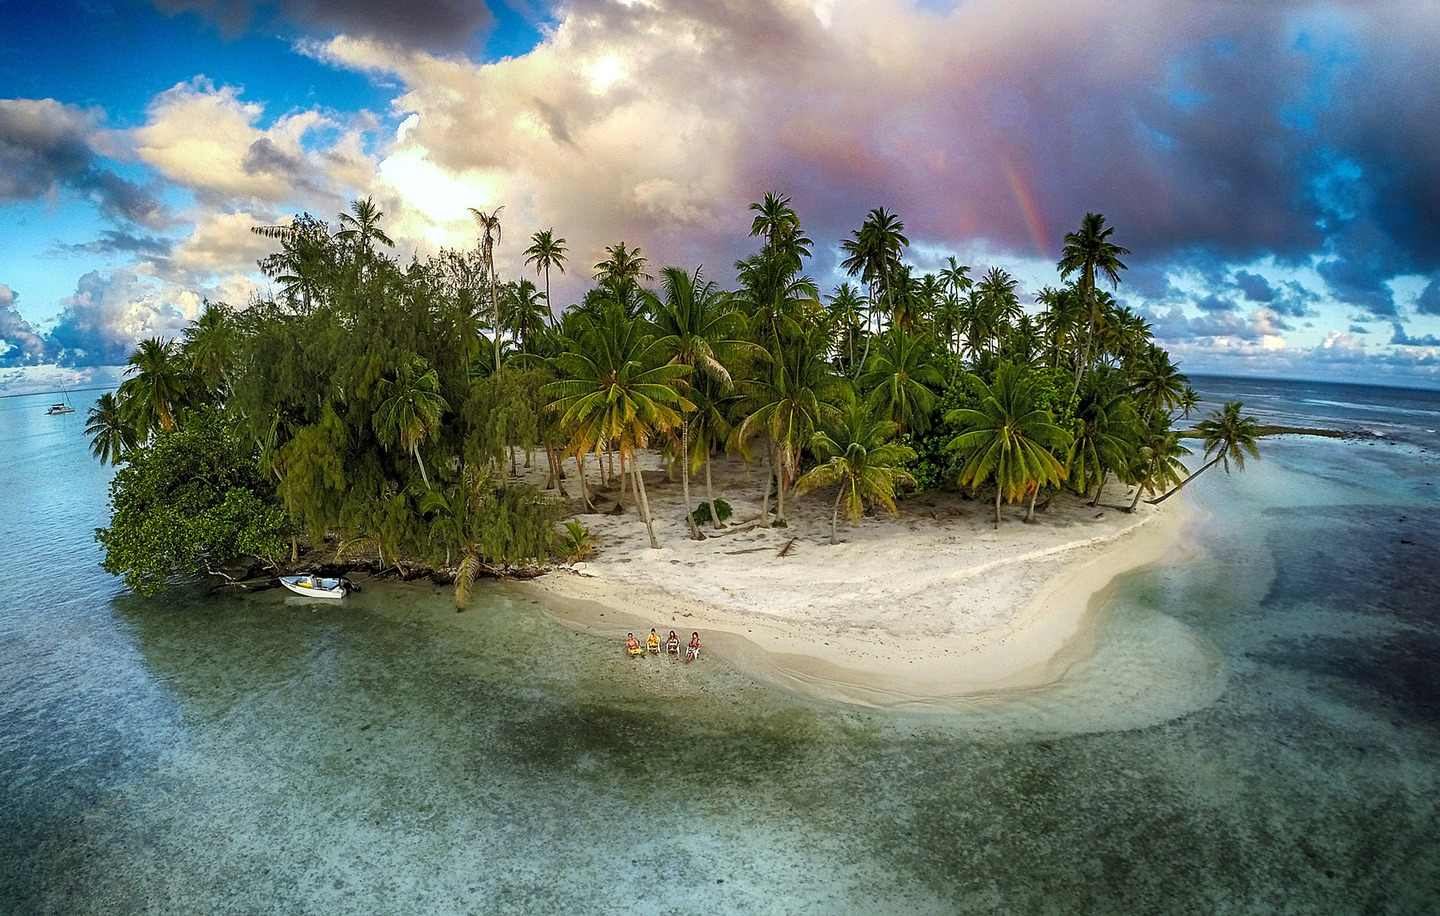 Lost island. Photo by Marama via Dronestagram.